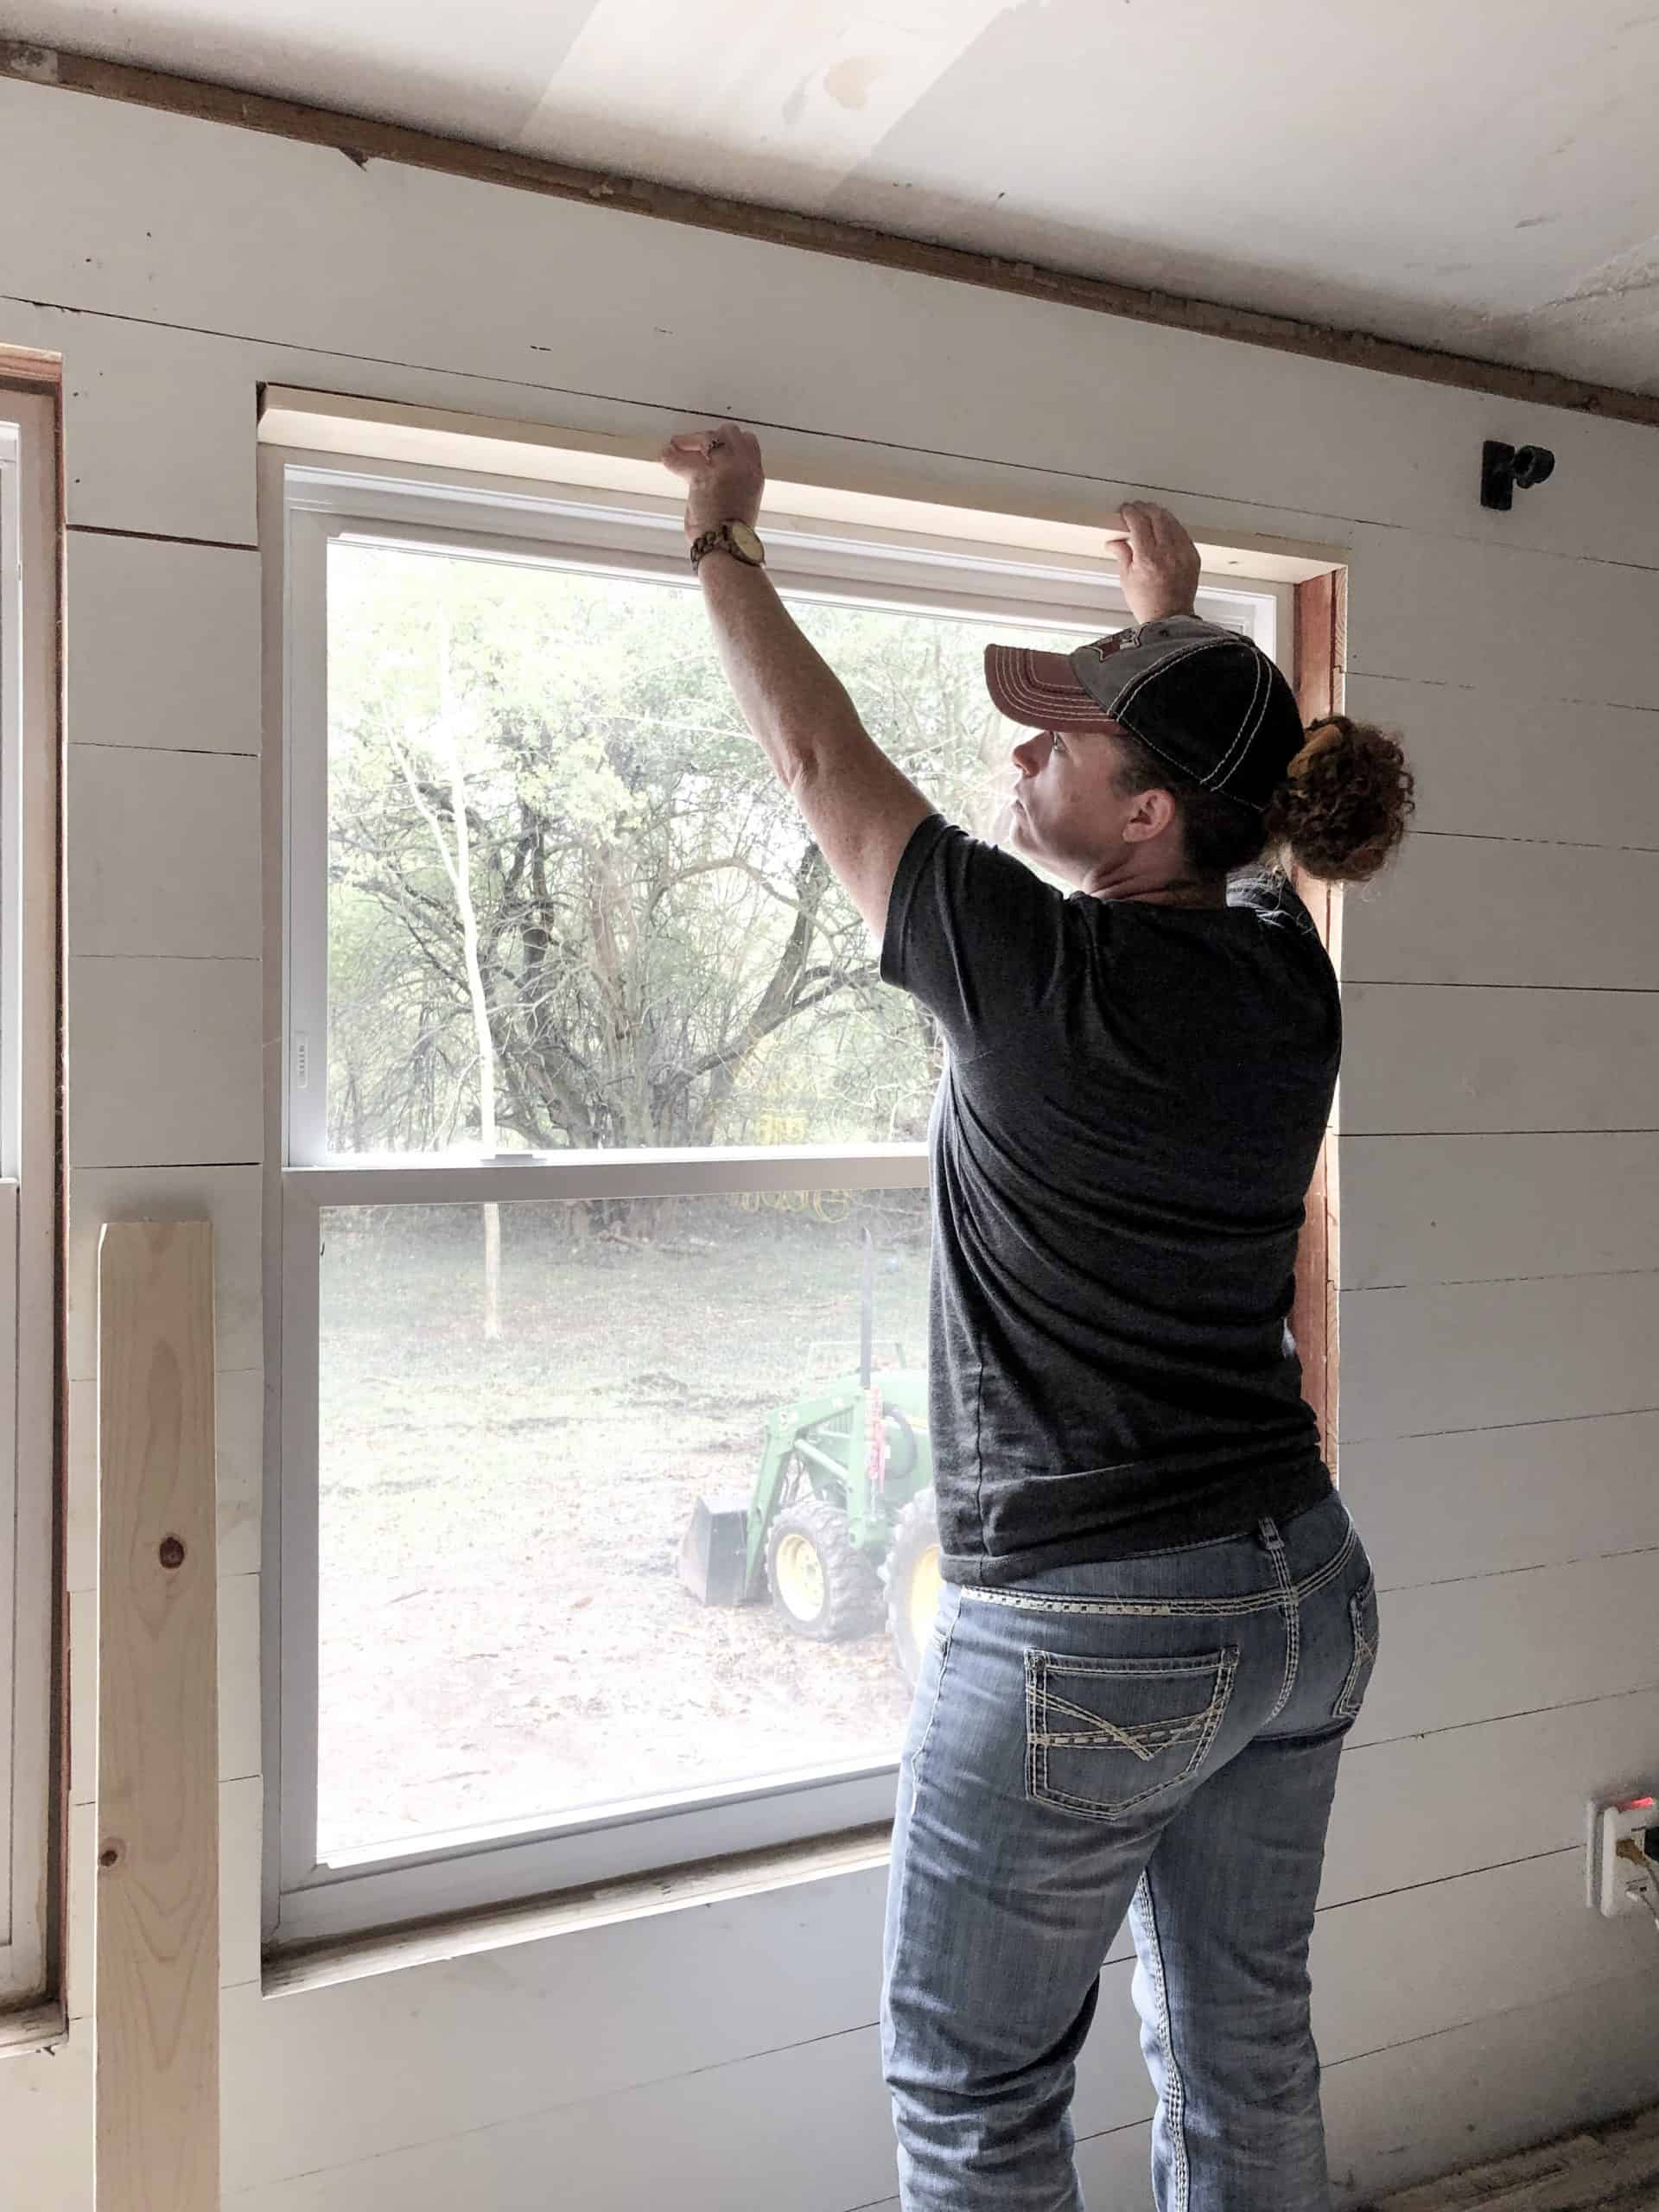 Trim and Molding for a Mobile Home - DIY Mobile Home Remodel